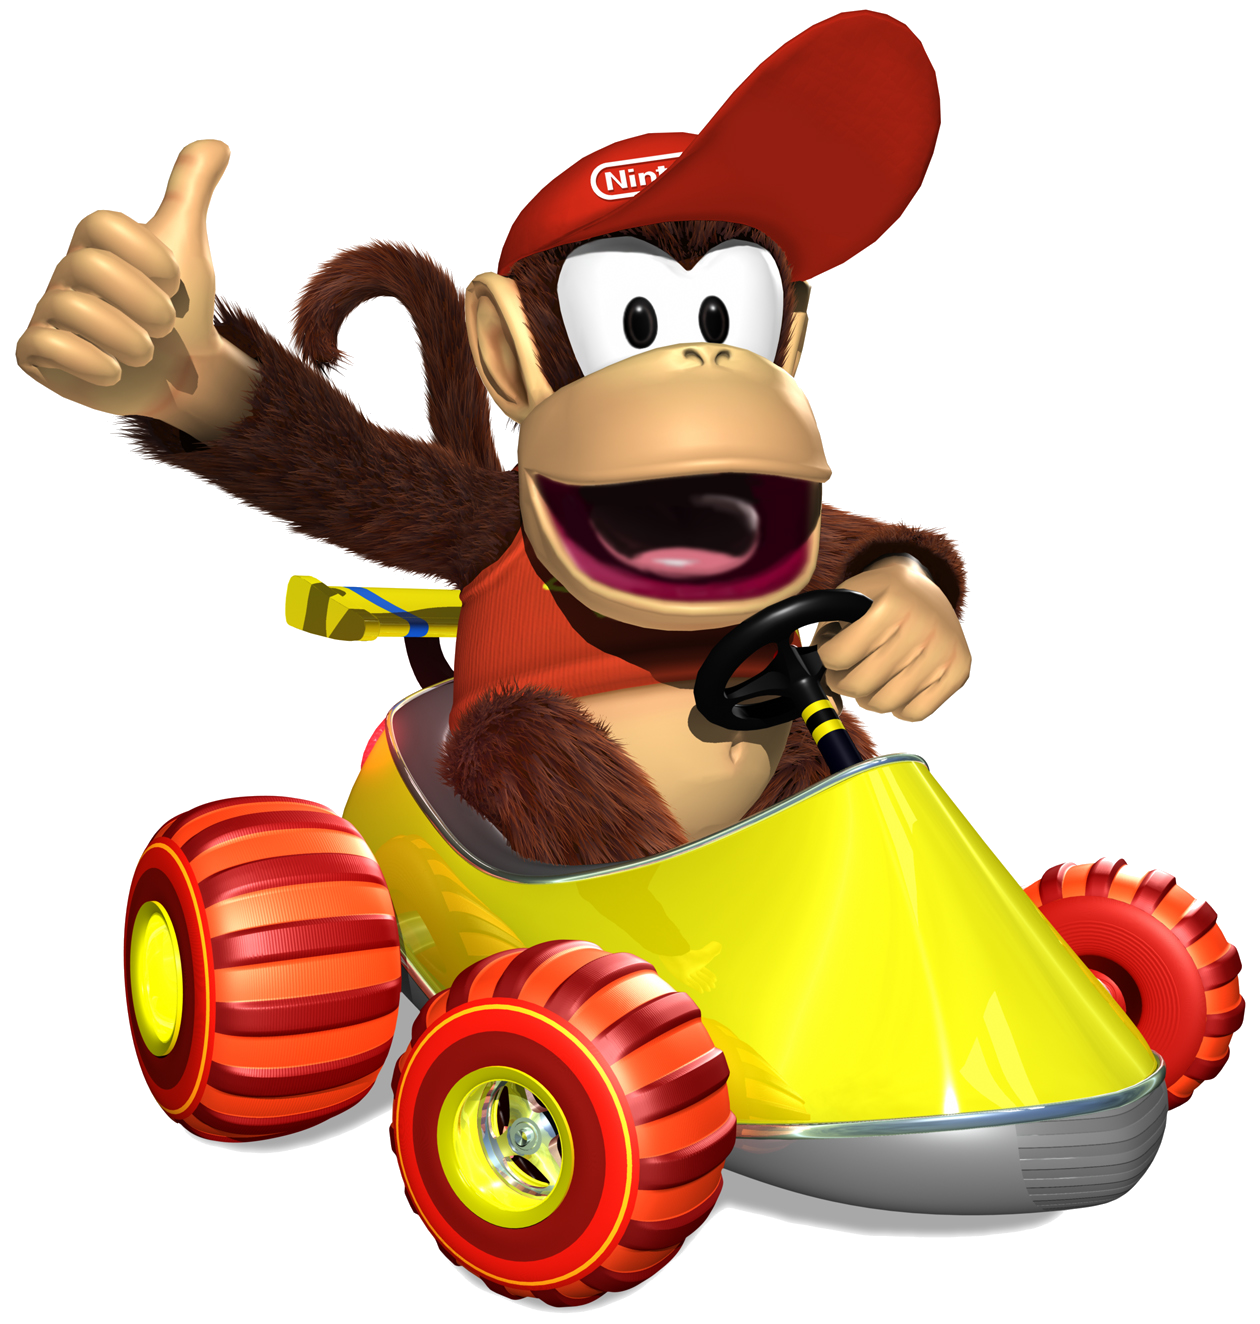 Download Toy Kart Wii Kong Mario Diddy Racing Hq Png Image